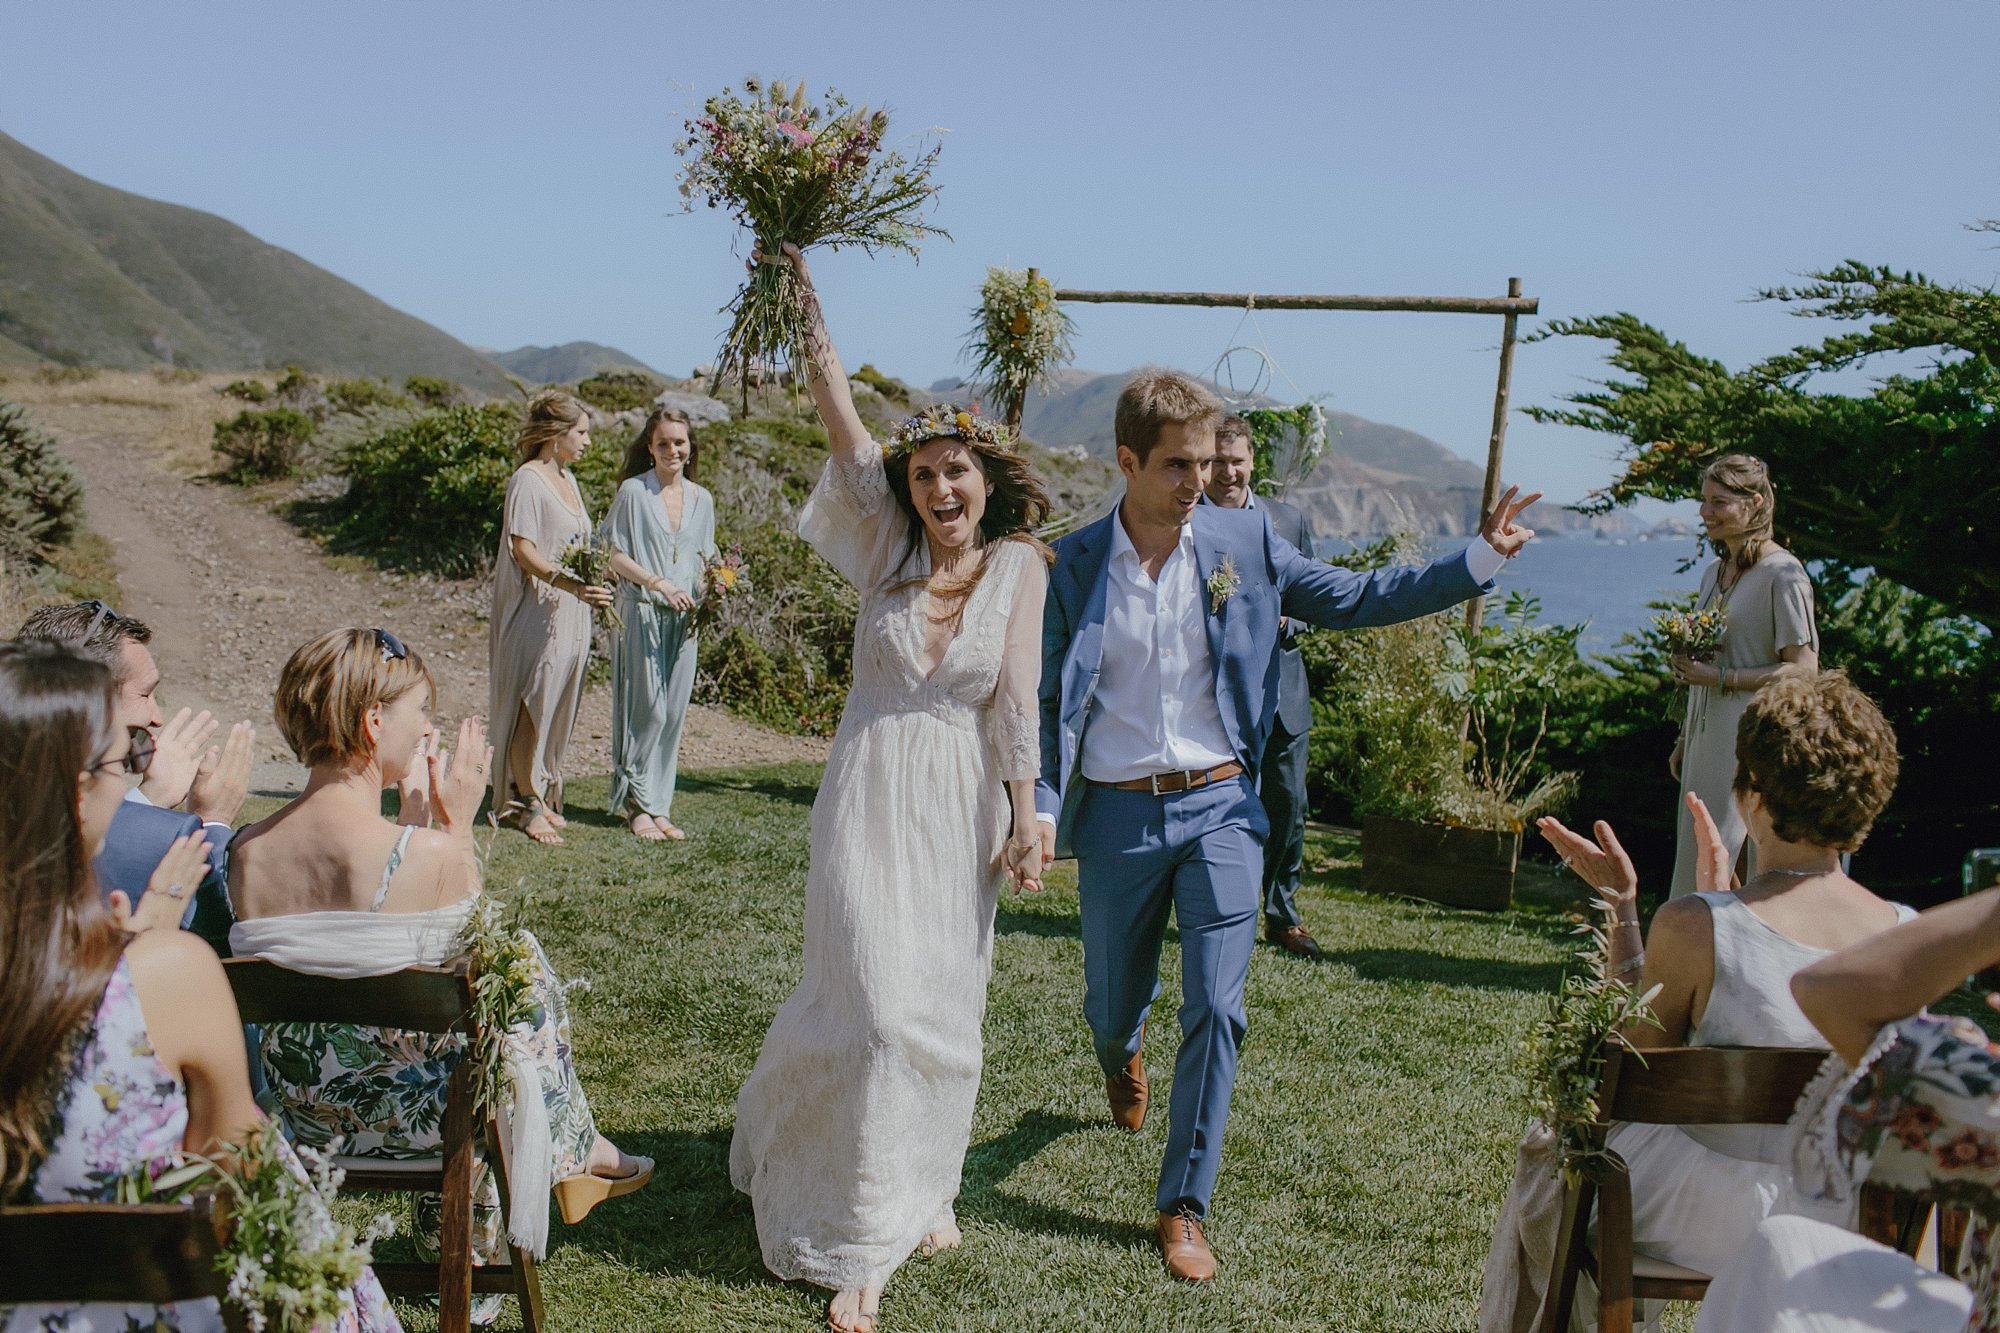 The bride and groom are married in Big Sur